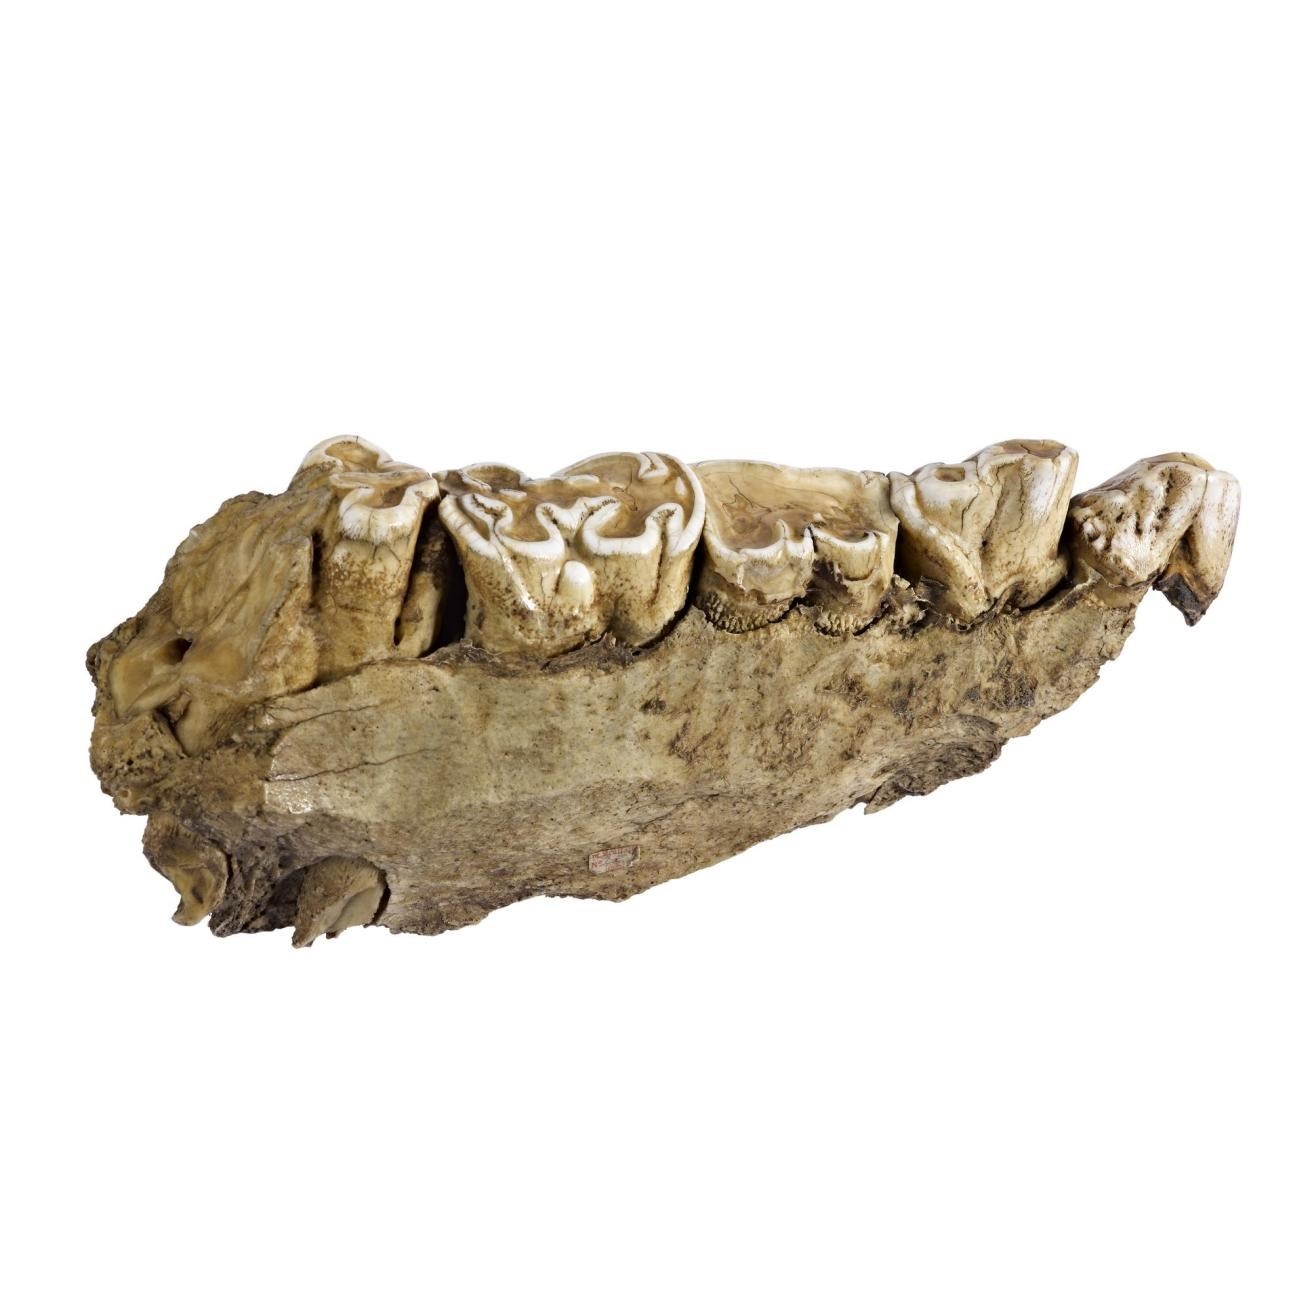 Hippopotamus amphibius, hippopotamus, part of mandible, collected by David Livingstone, Southern Africa.